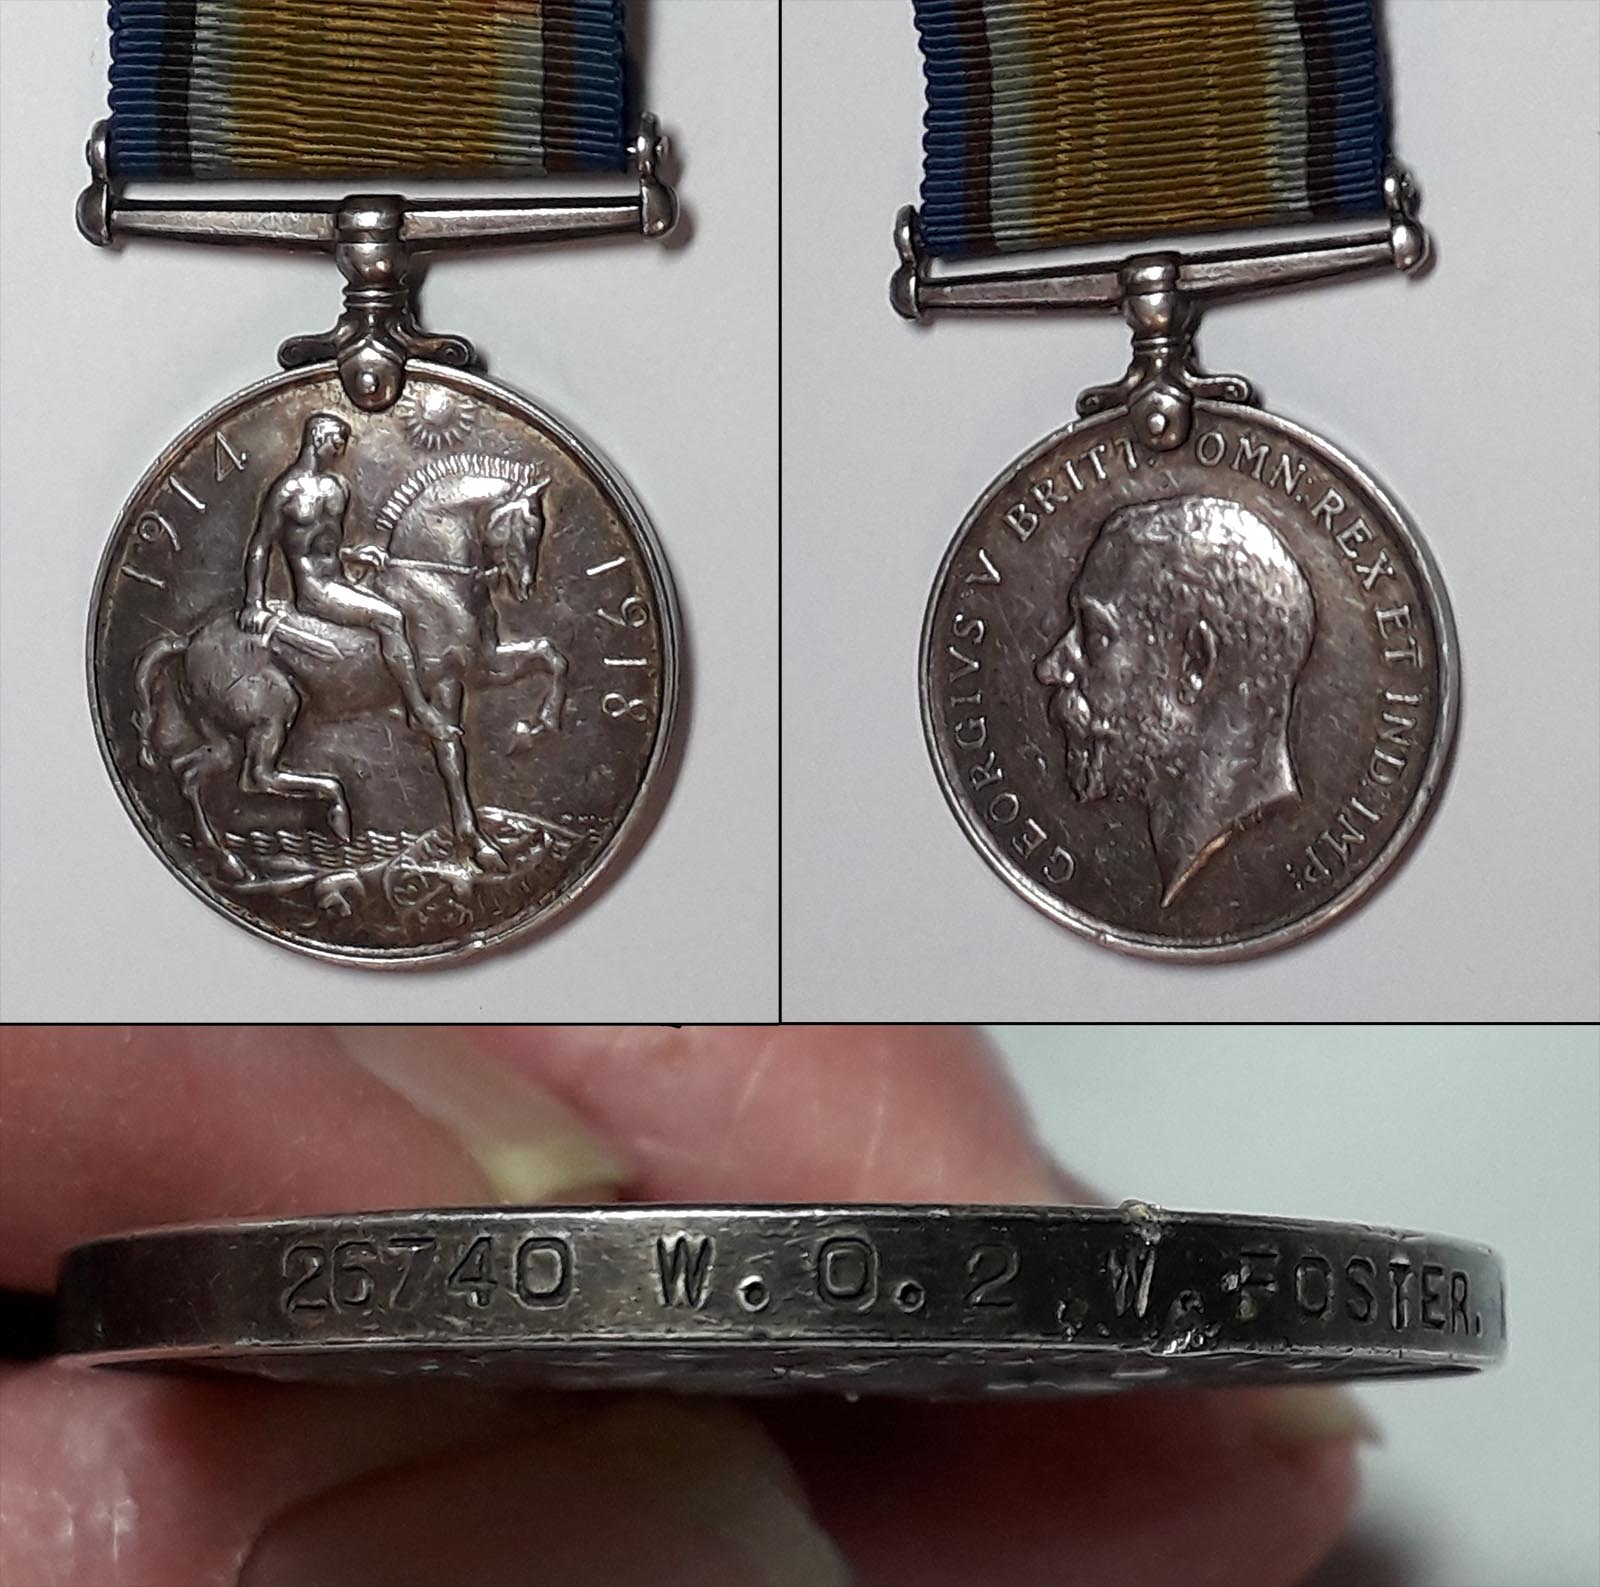 William Foster's British War Medal